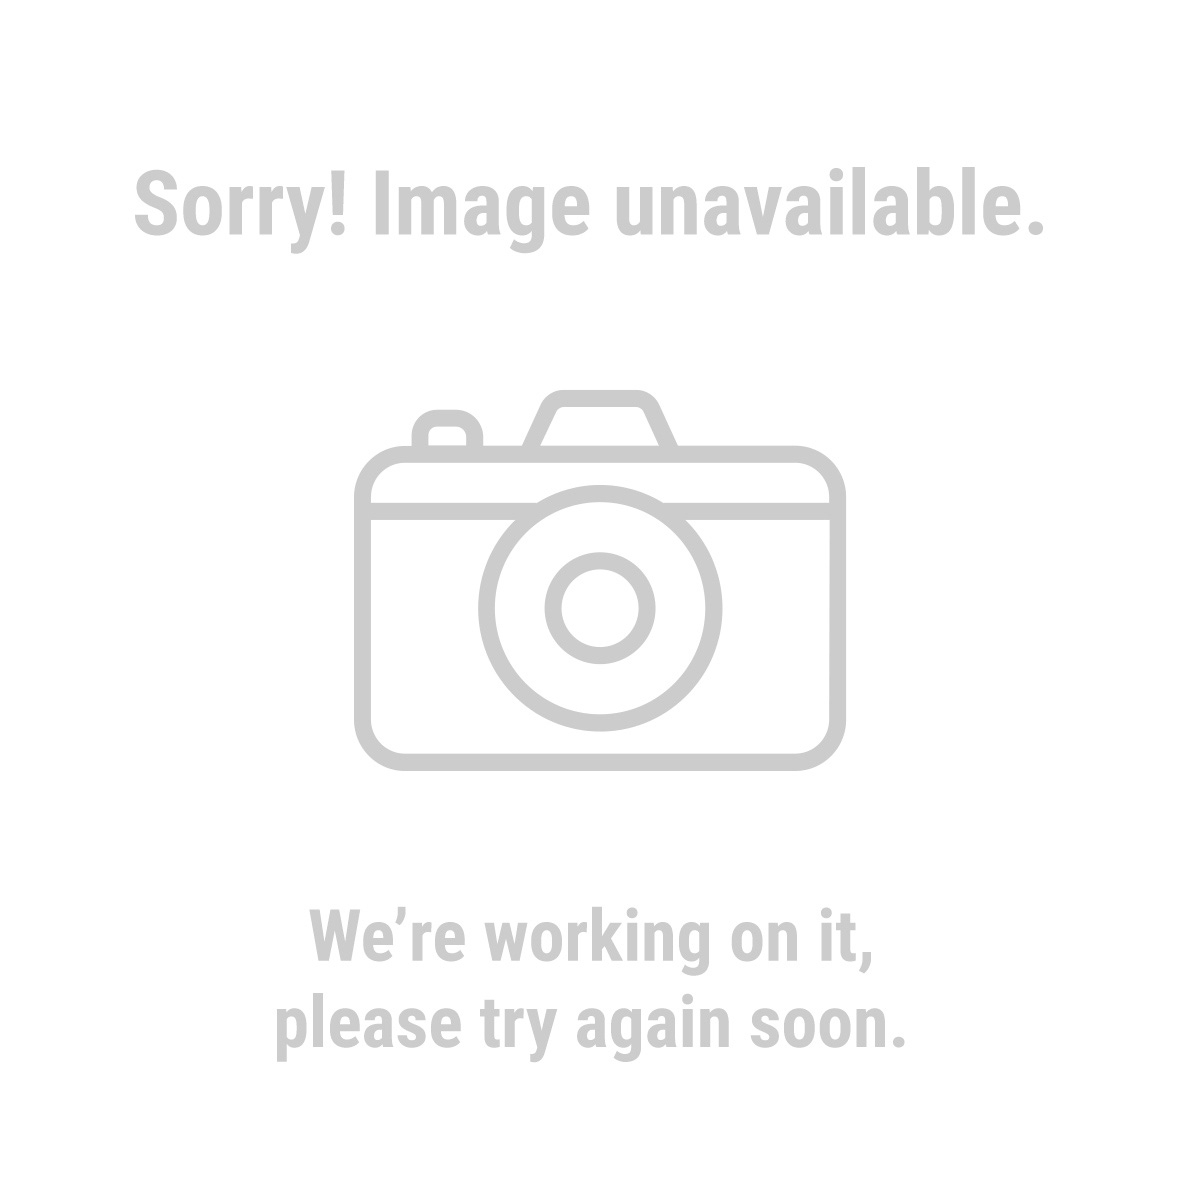 Central Machinery 43378 Heavy Duty 16 Speed Floor Drill Press